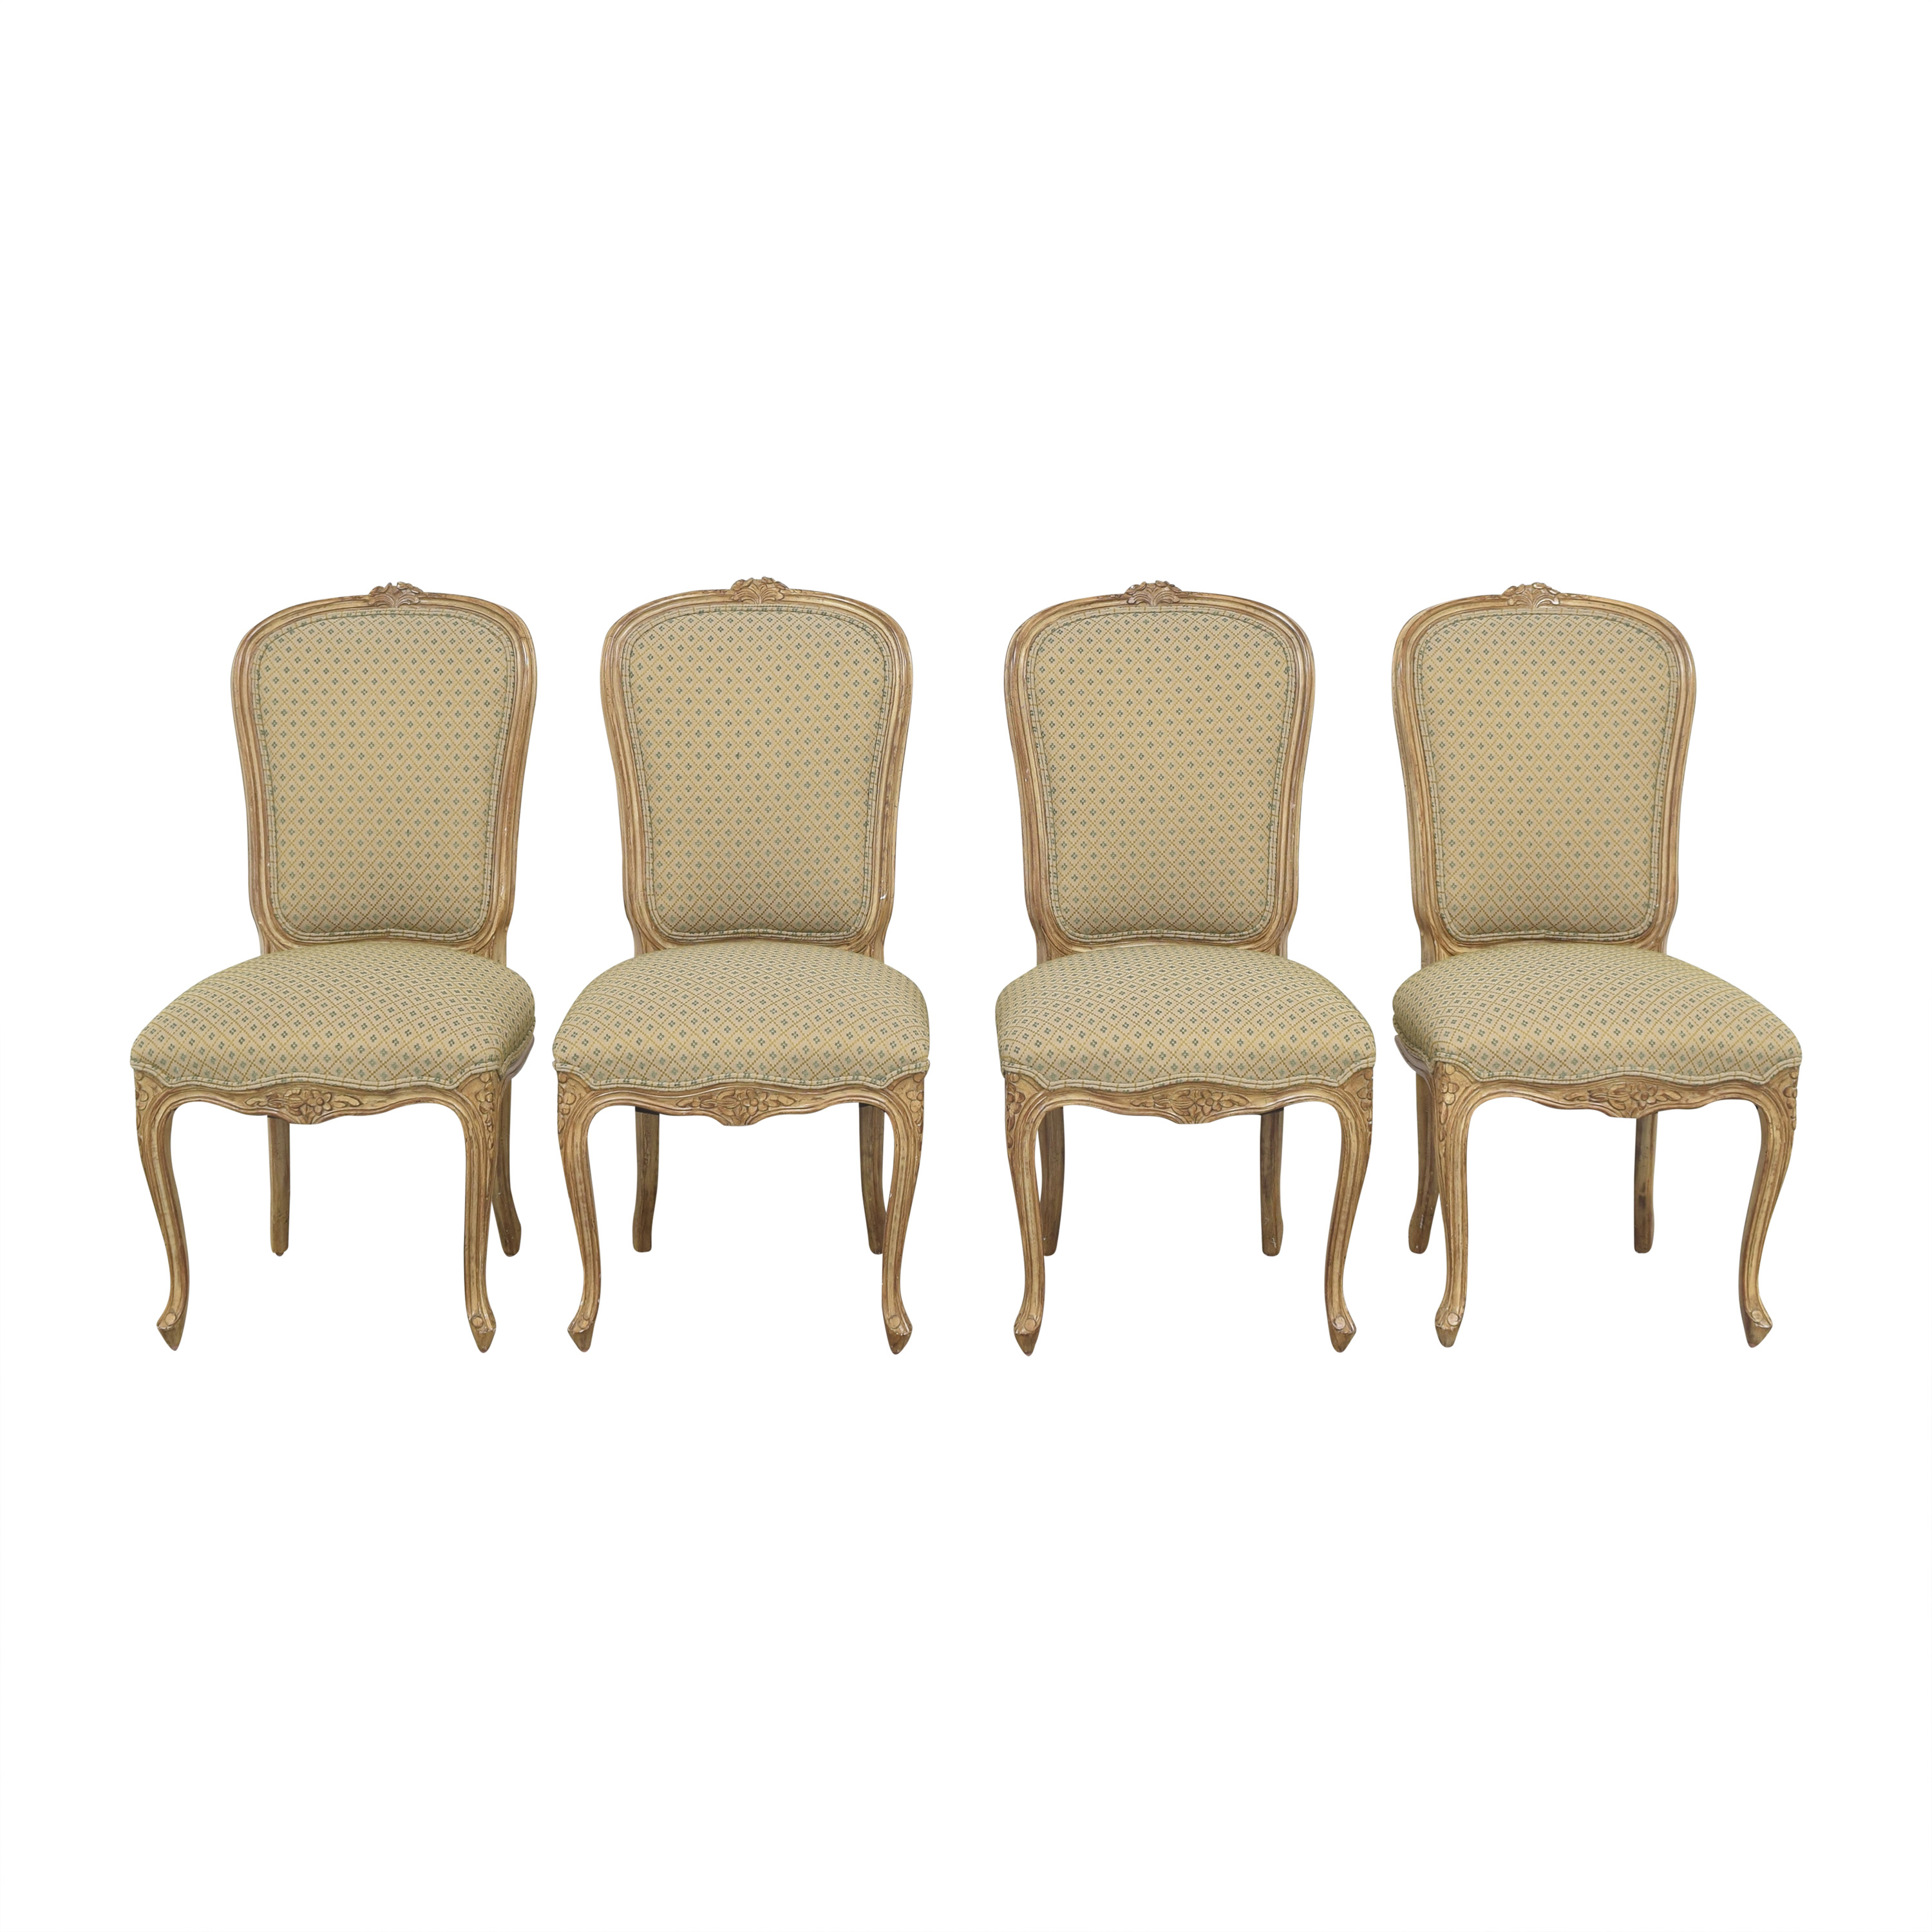 shop  Upholstered Decorative Dining Chairs online